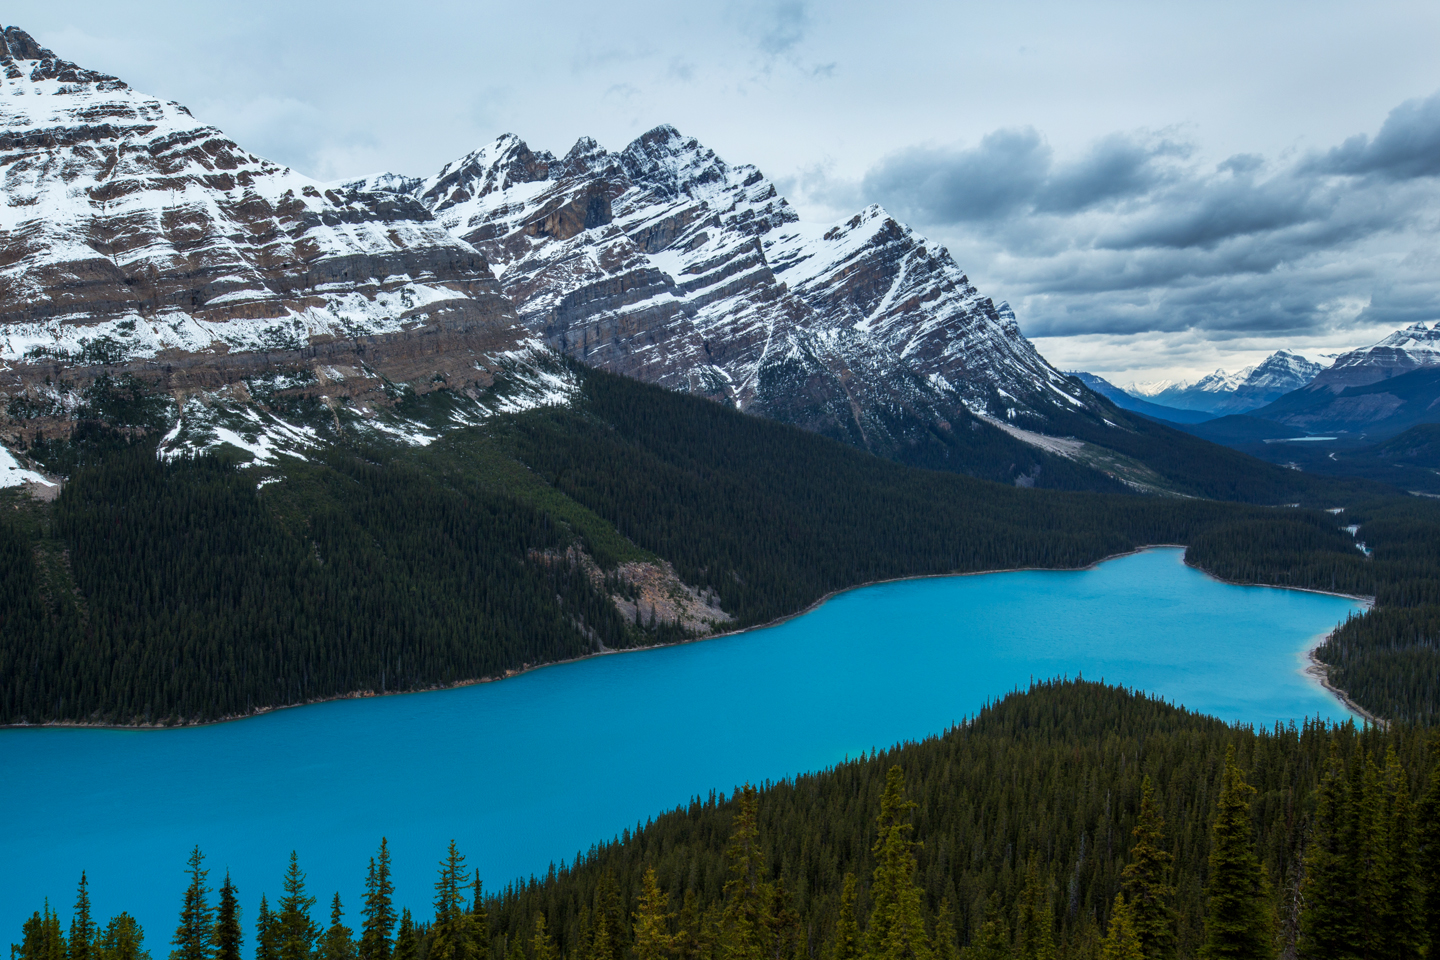 Shore of Peyto Lake